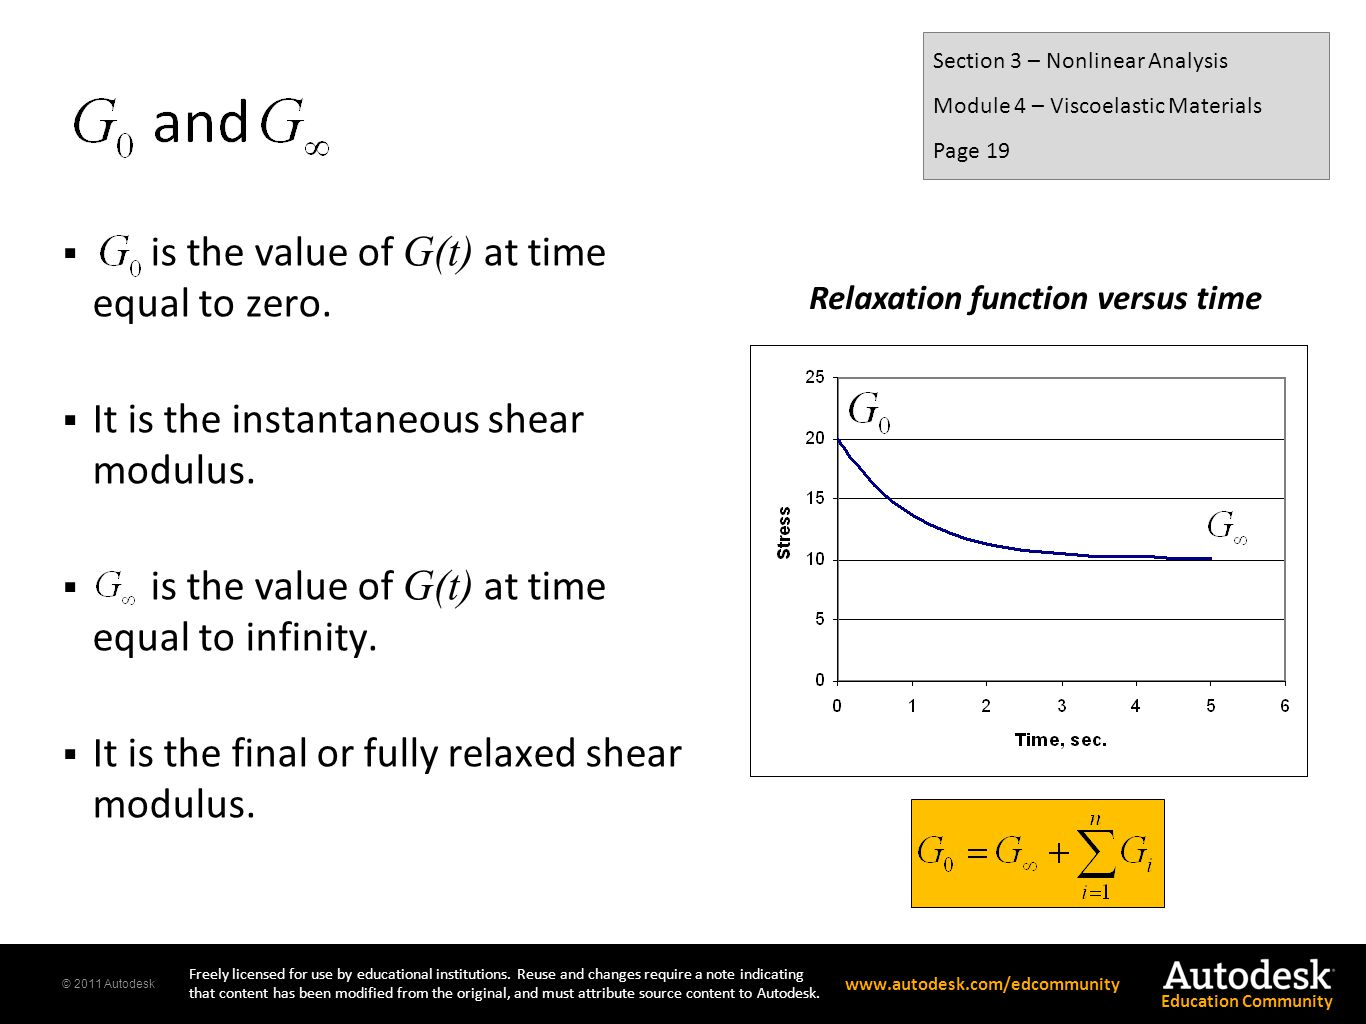 is the value of G(t) at time equal to zero.